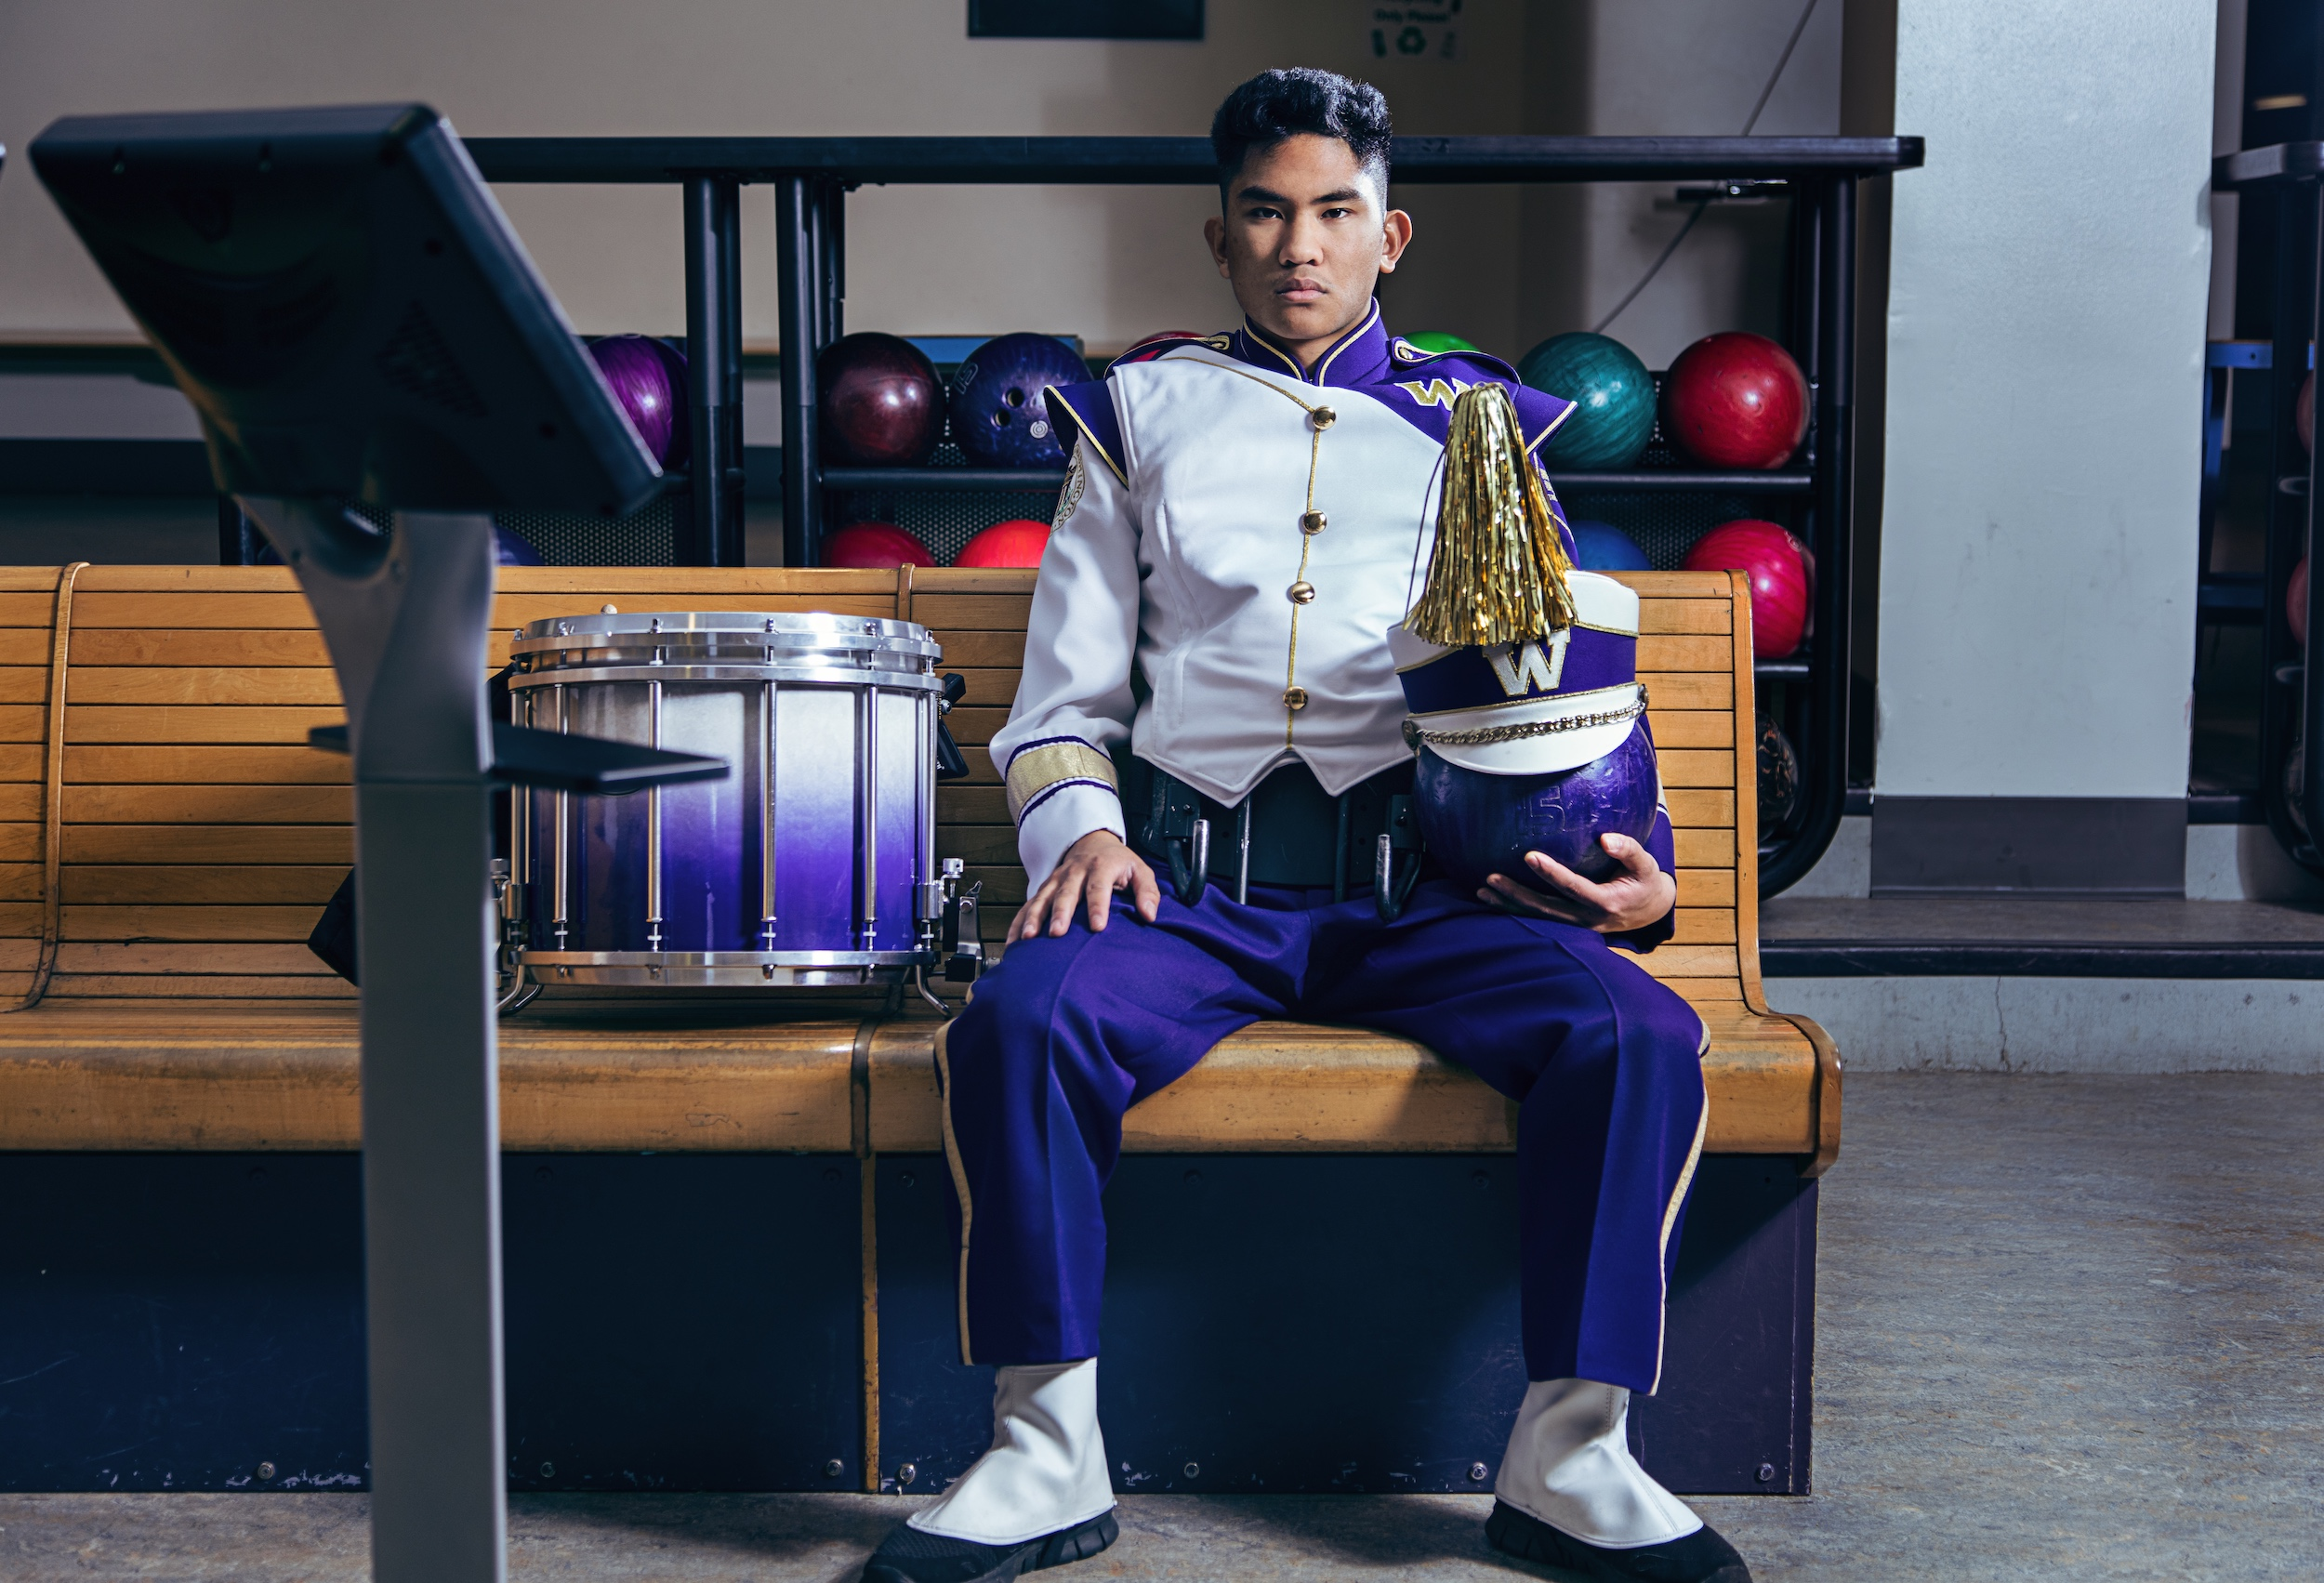 chris serica, husky marching band, snare drum, fiesta bowl, hub bowling alley, hub games room, uw hub bowling, uw hub